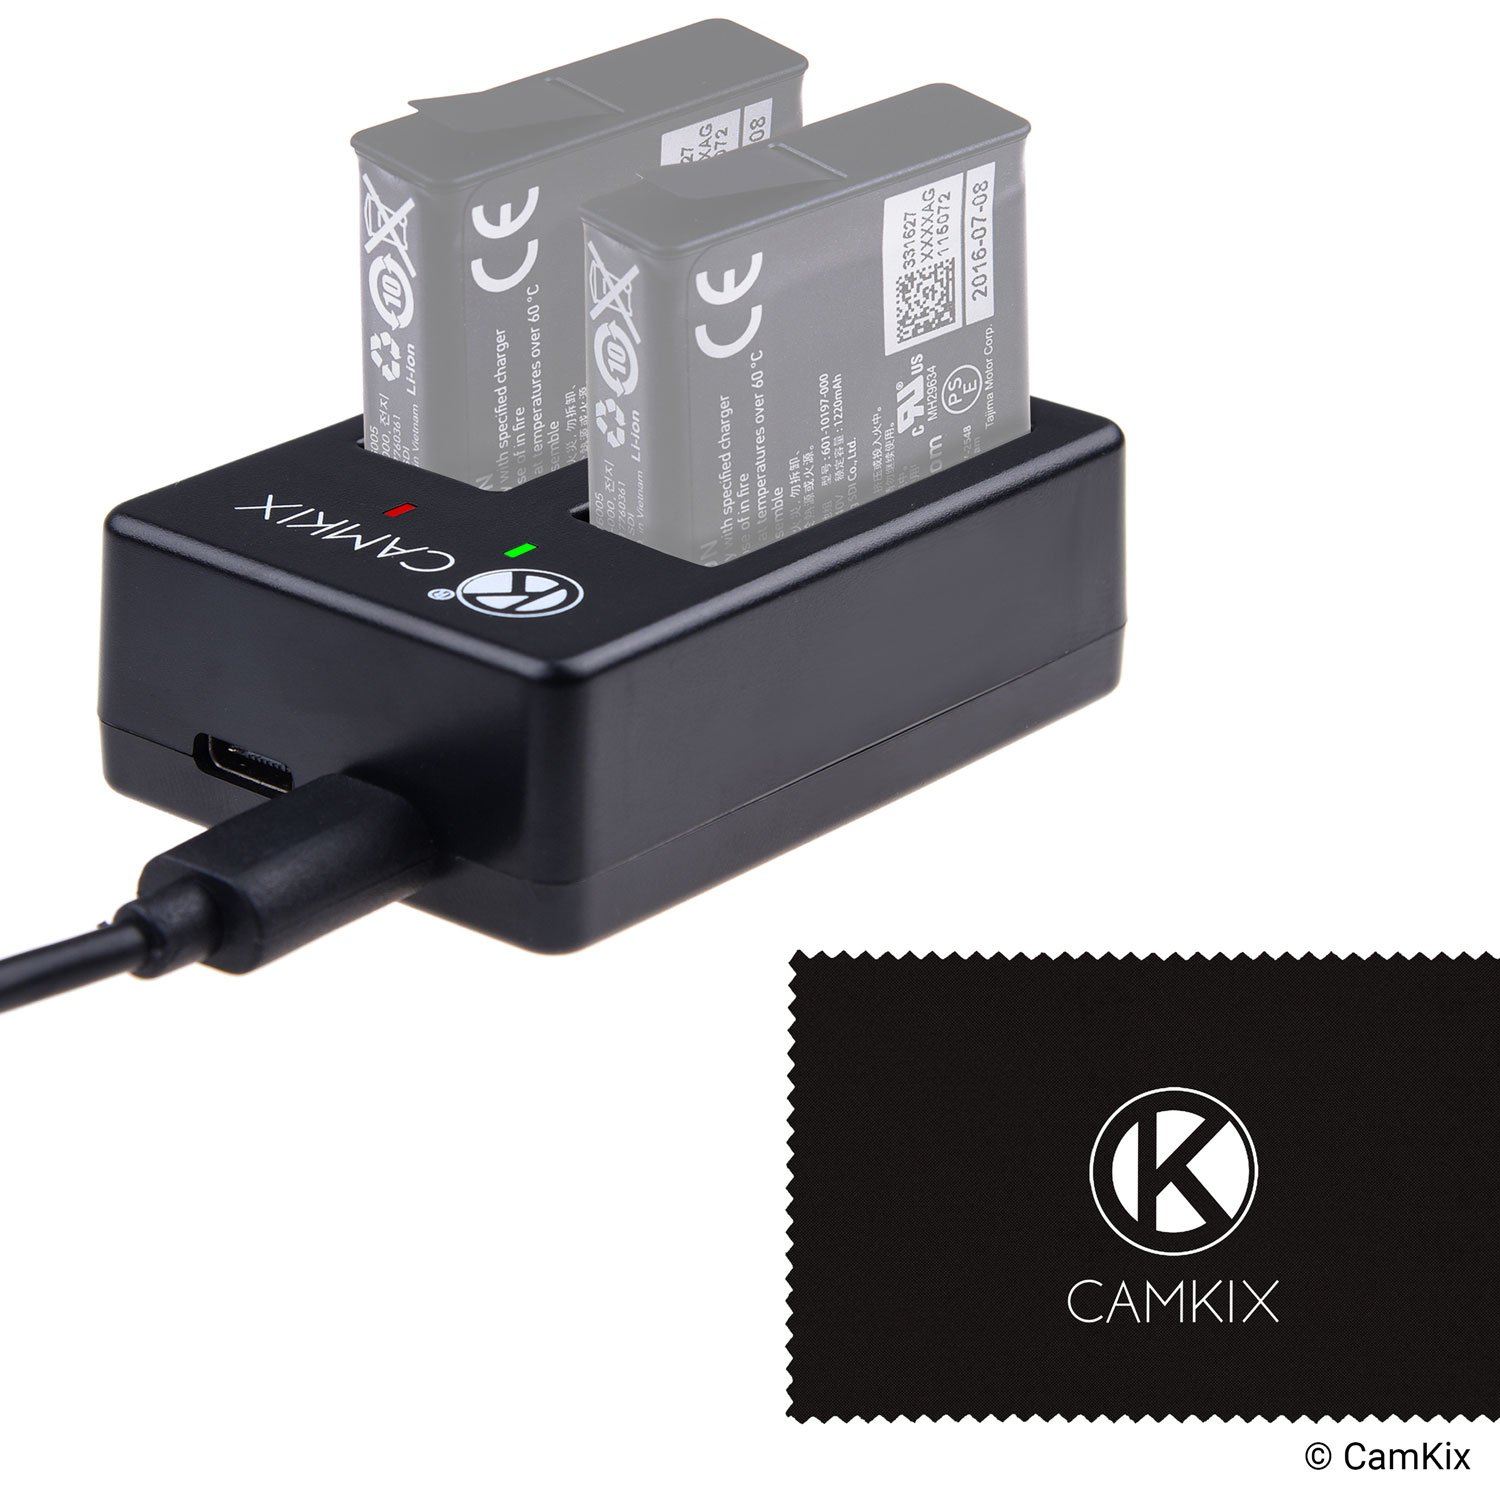 Buy Camkix Dual Pro Charger For Gopro Hero 5 Batteries Aabat 001 Usb Wiring Red White Black Green Quickly